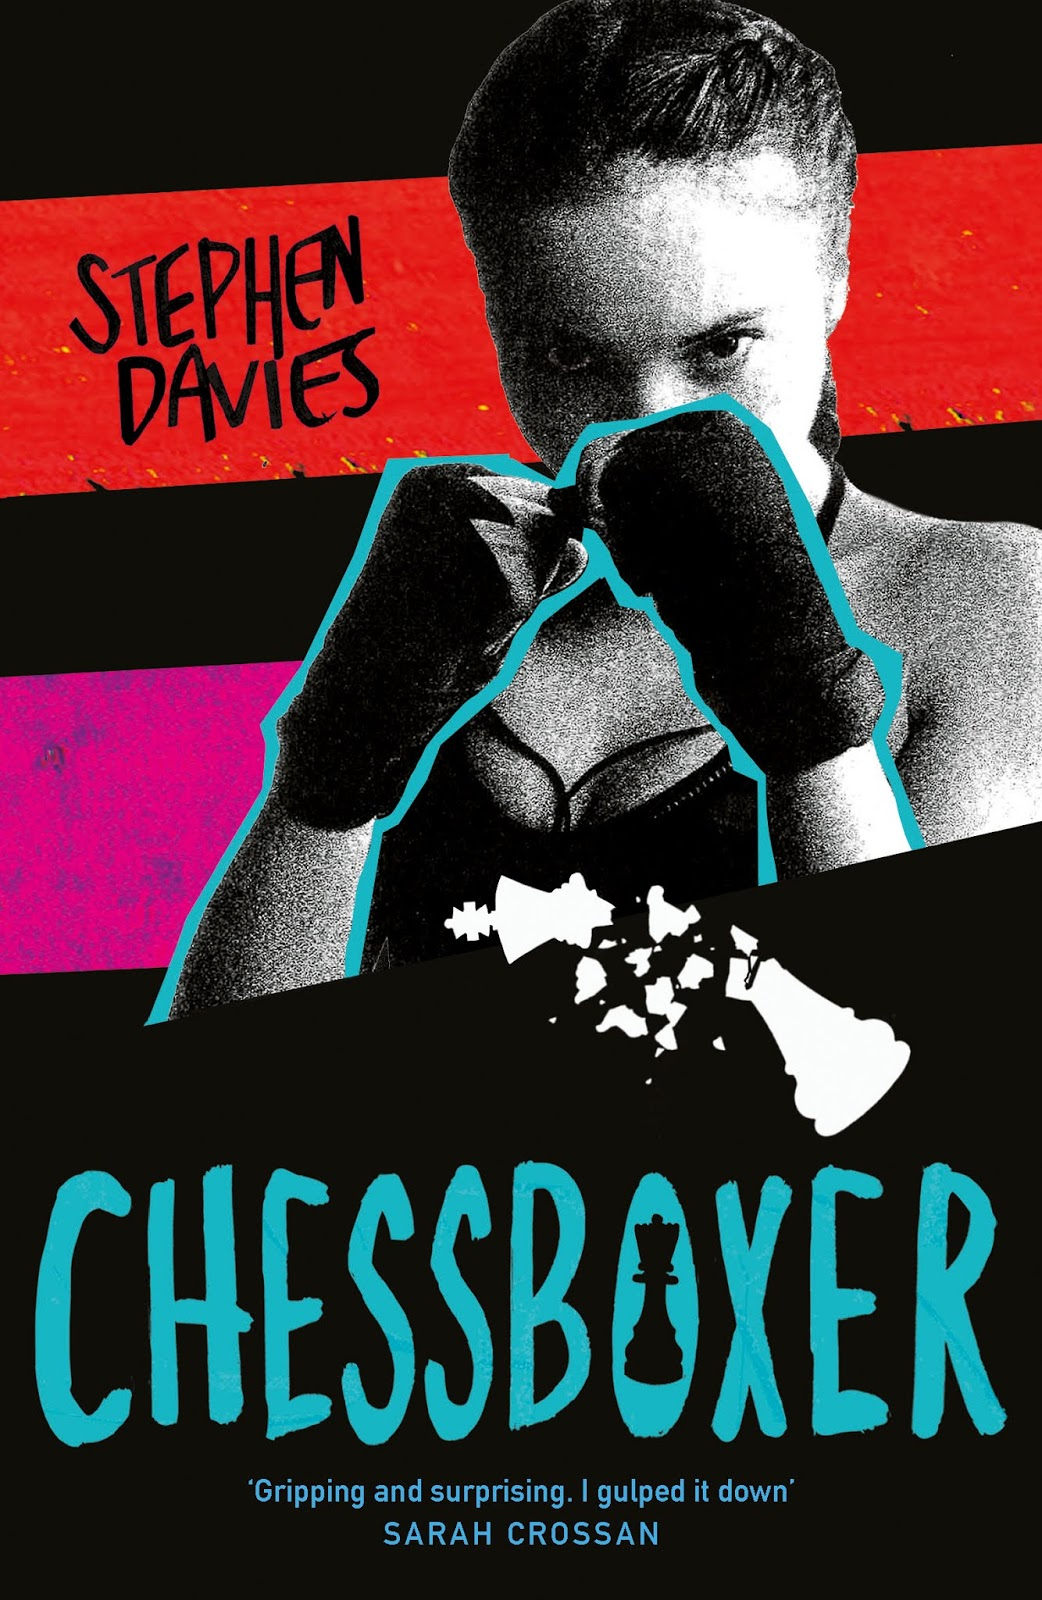 Chessboxer by Stephen Davies | Superior Young Adult Fiction | Book Review